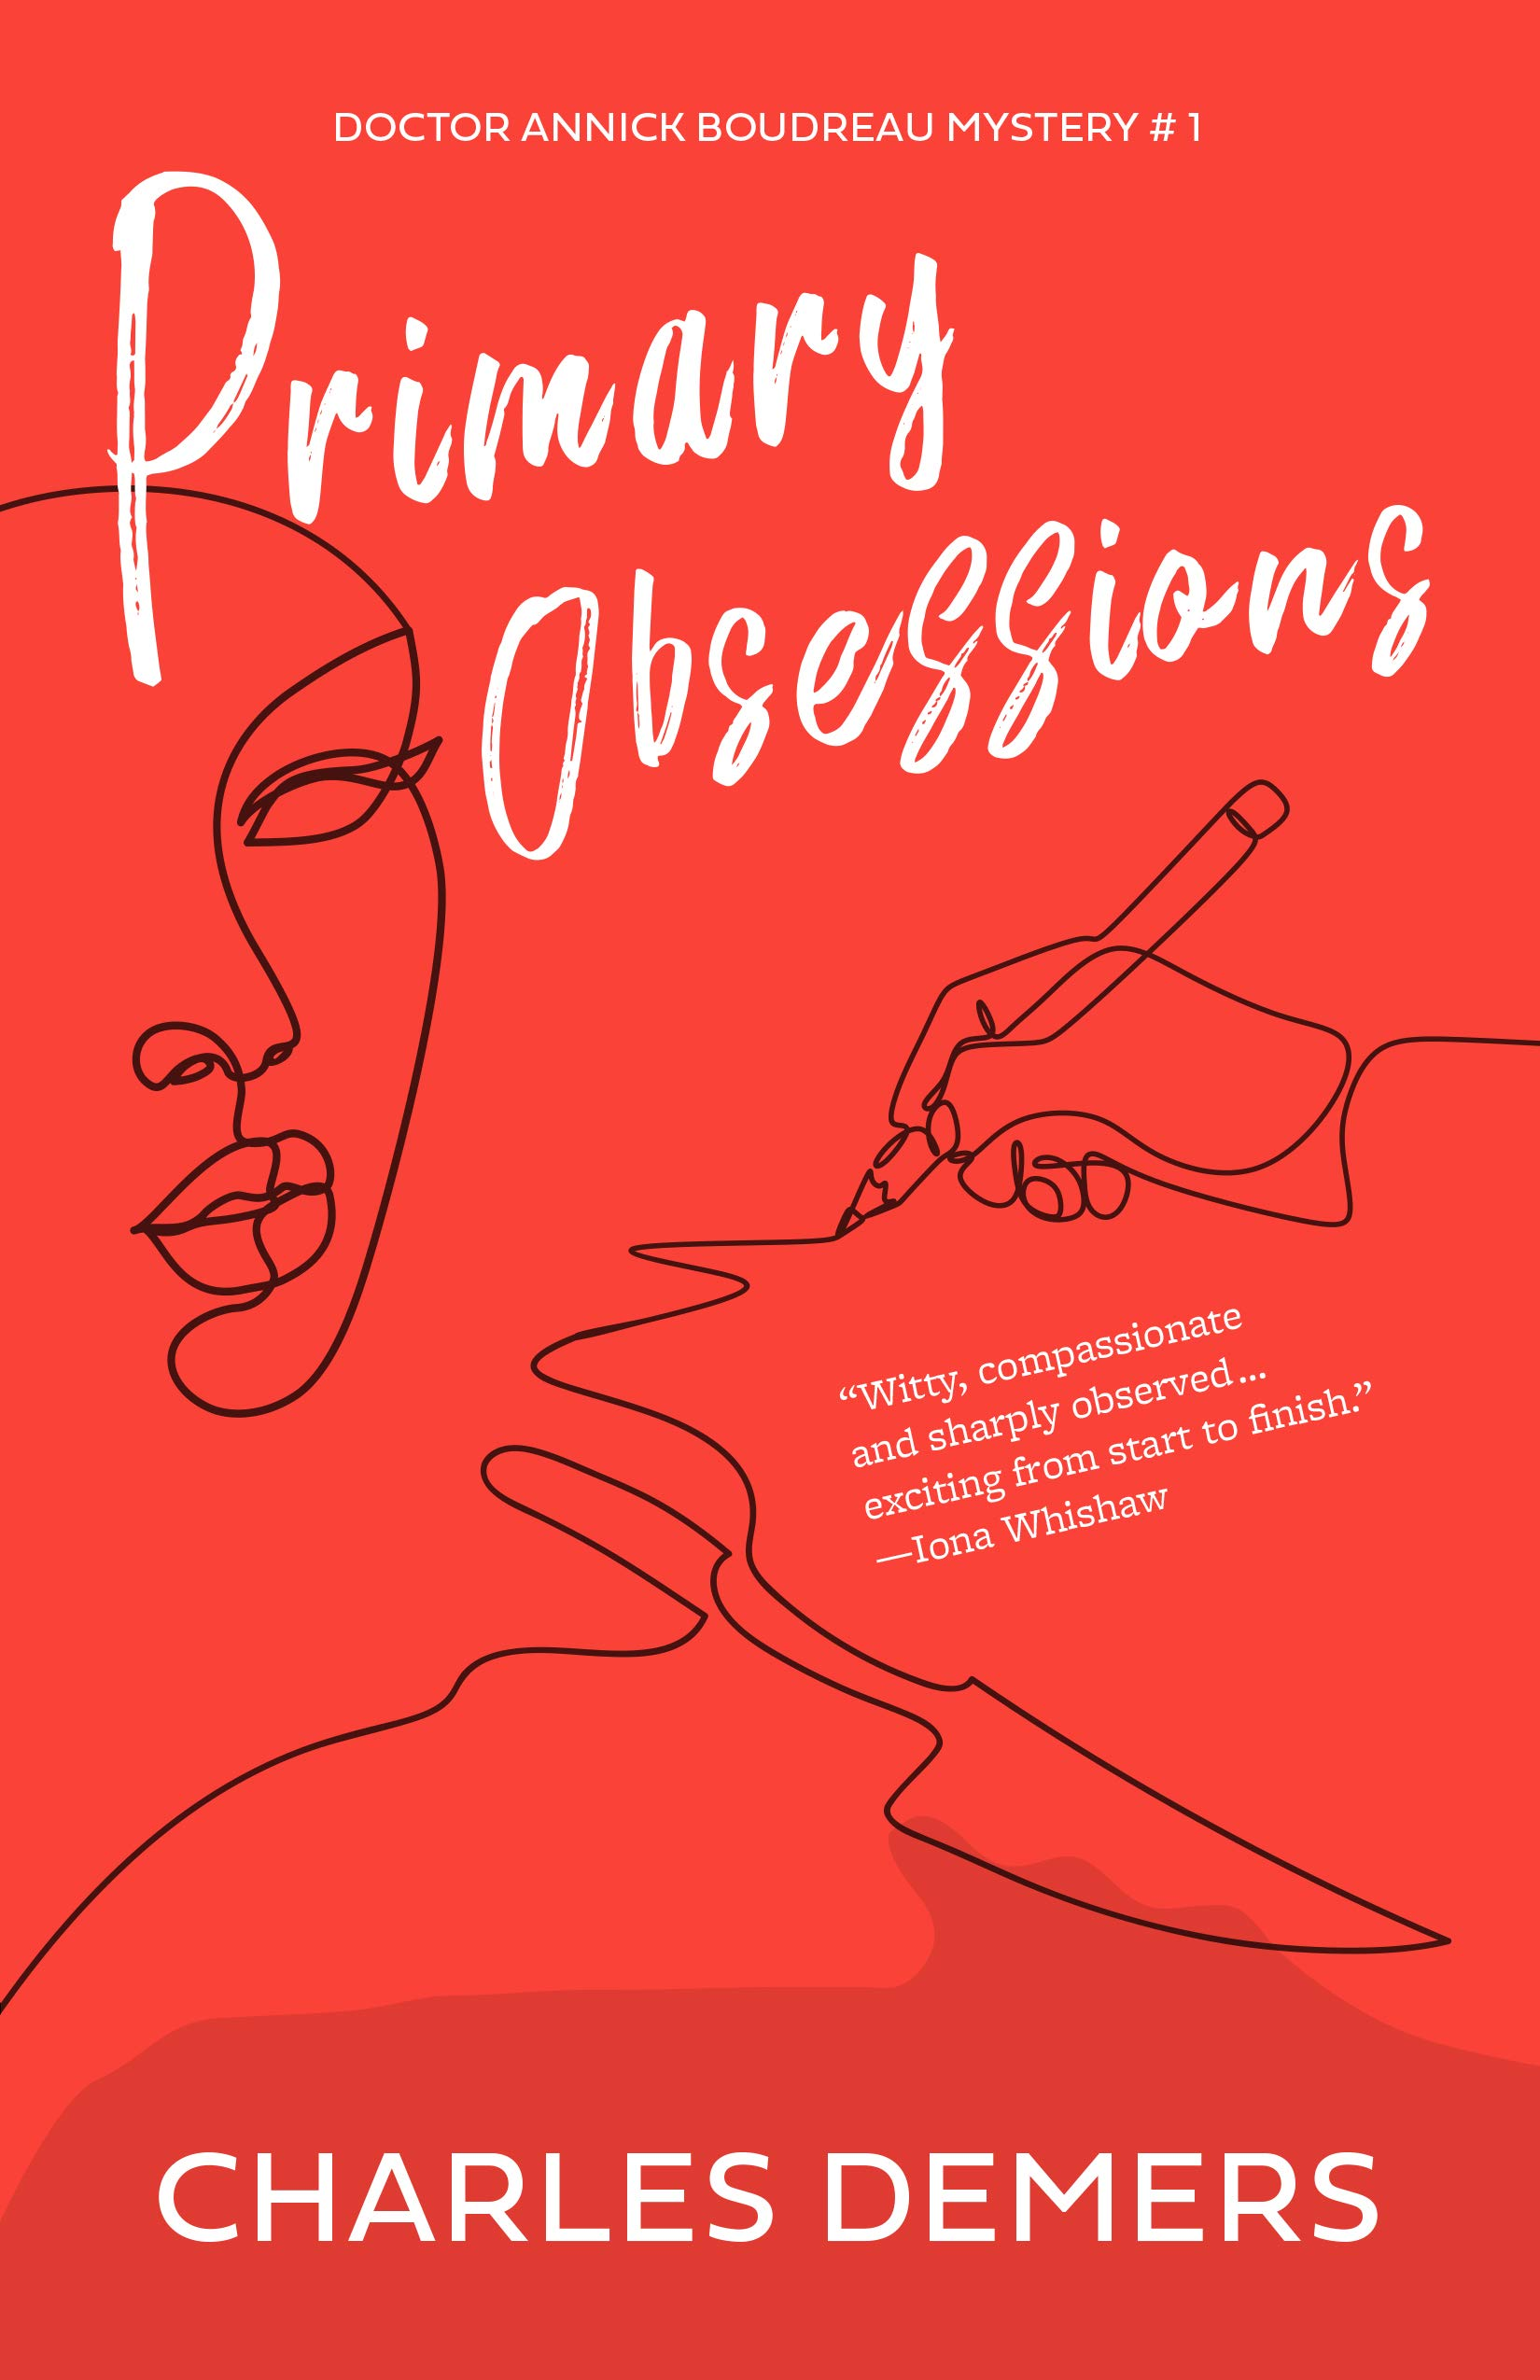 Primary Obsessions: Demers, Charles: 9781771622561: Books - Amazon.ca